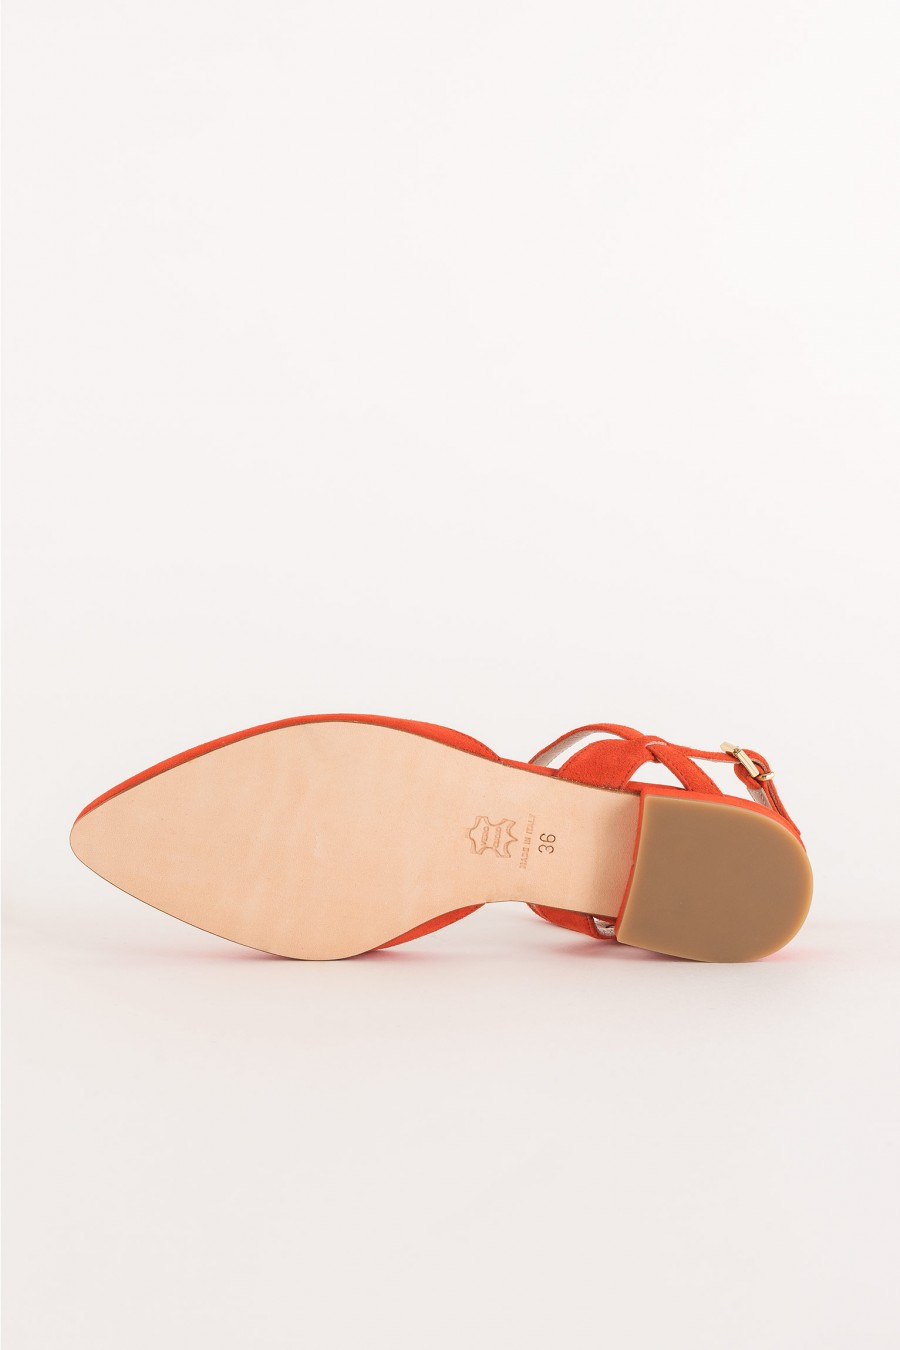 coral-colored ballerina